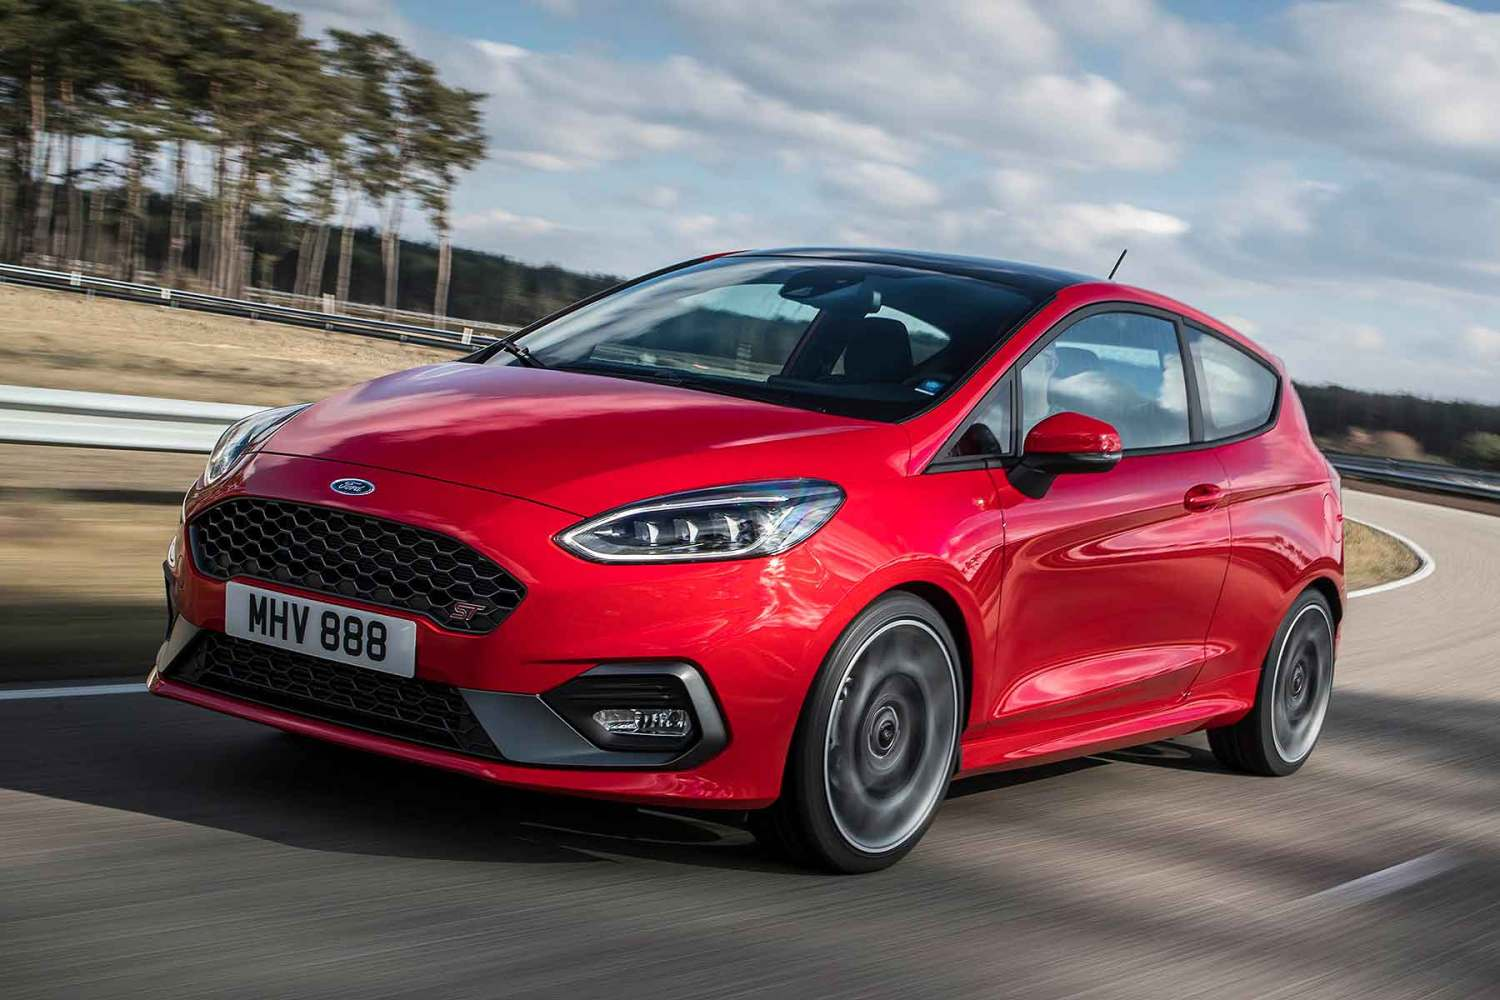 2018 Ford Fiesta ST will feature patented suspension tech